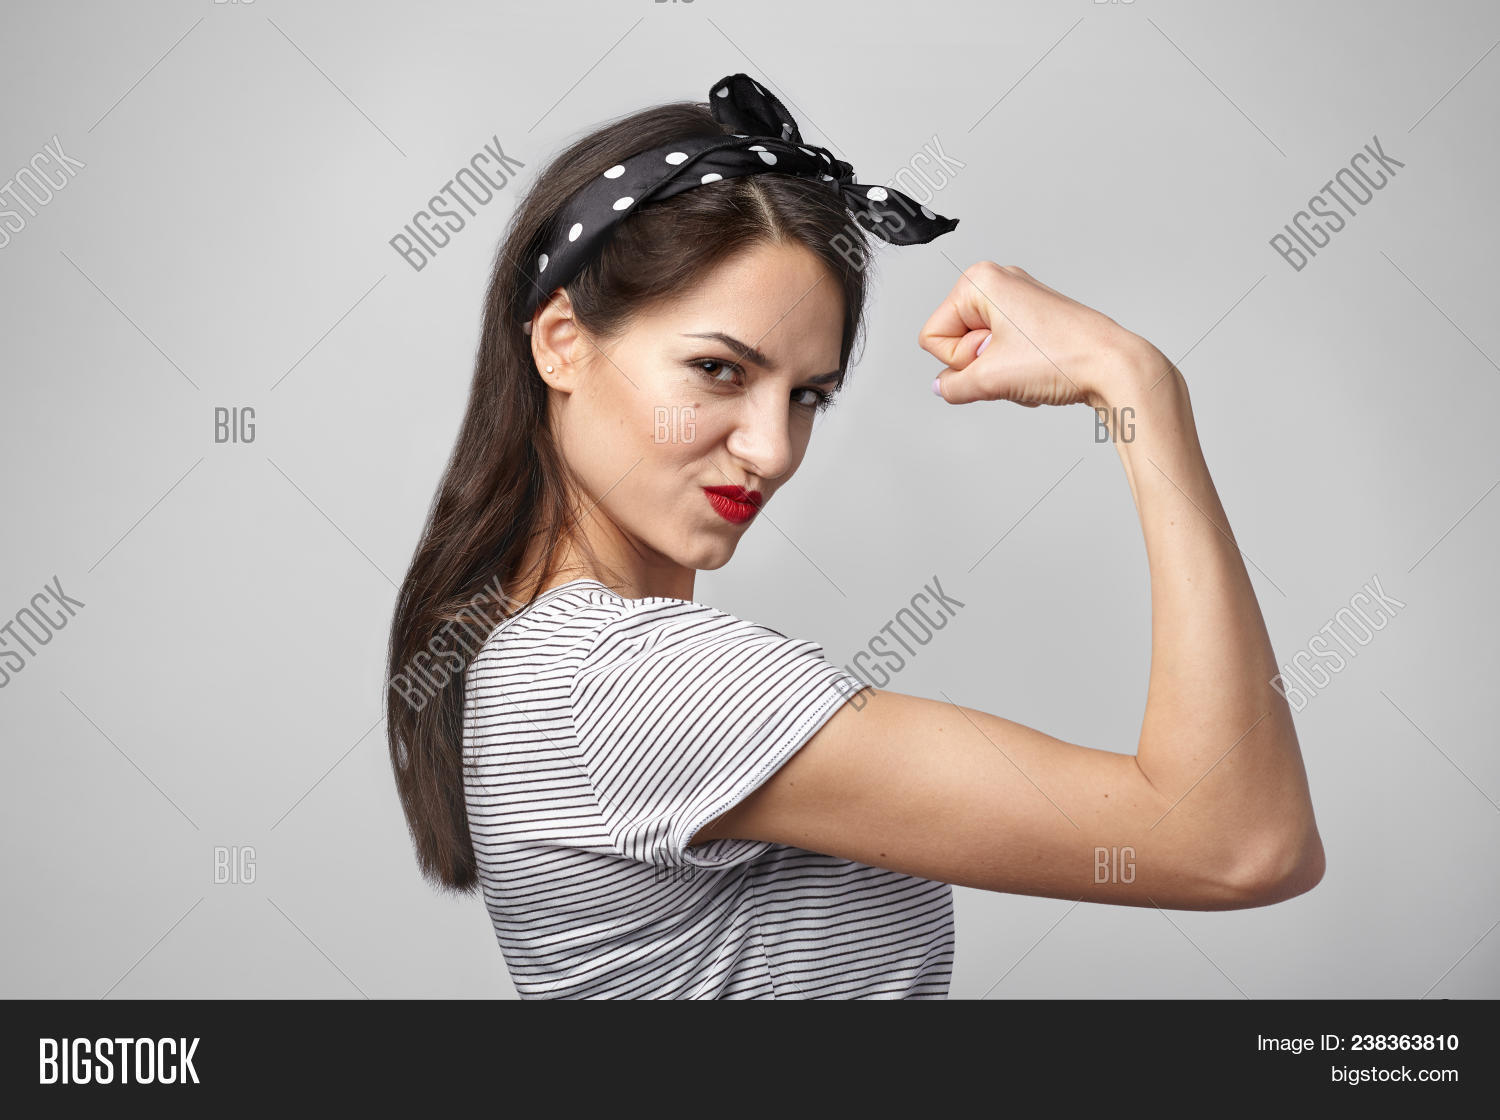 adult,arm,attitude,attractive,background,beautiful,beauty,bicep,body,brunette,casual,caucasian,confident,cute,emotion,expression,face,fashion,female,femininity,fighter,fist,fit,flexing,gesture,girl,hair,hand,happy,isolated,lady,looking,model,muscle,one,people,person,portrait,power,pretty,showing,smile,smiling,strength,strong,studio,white,woman,young